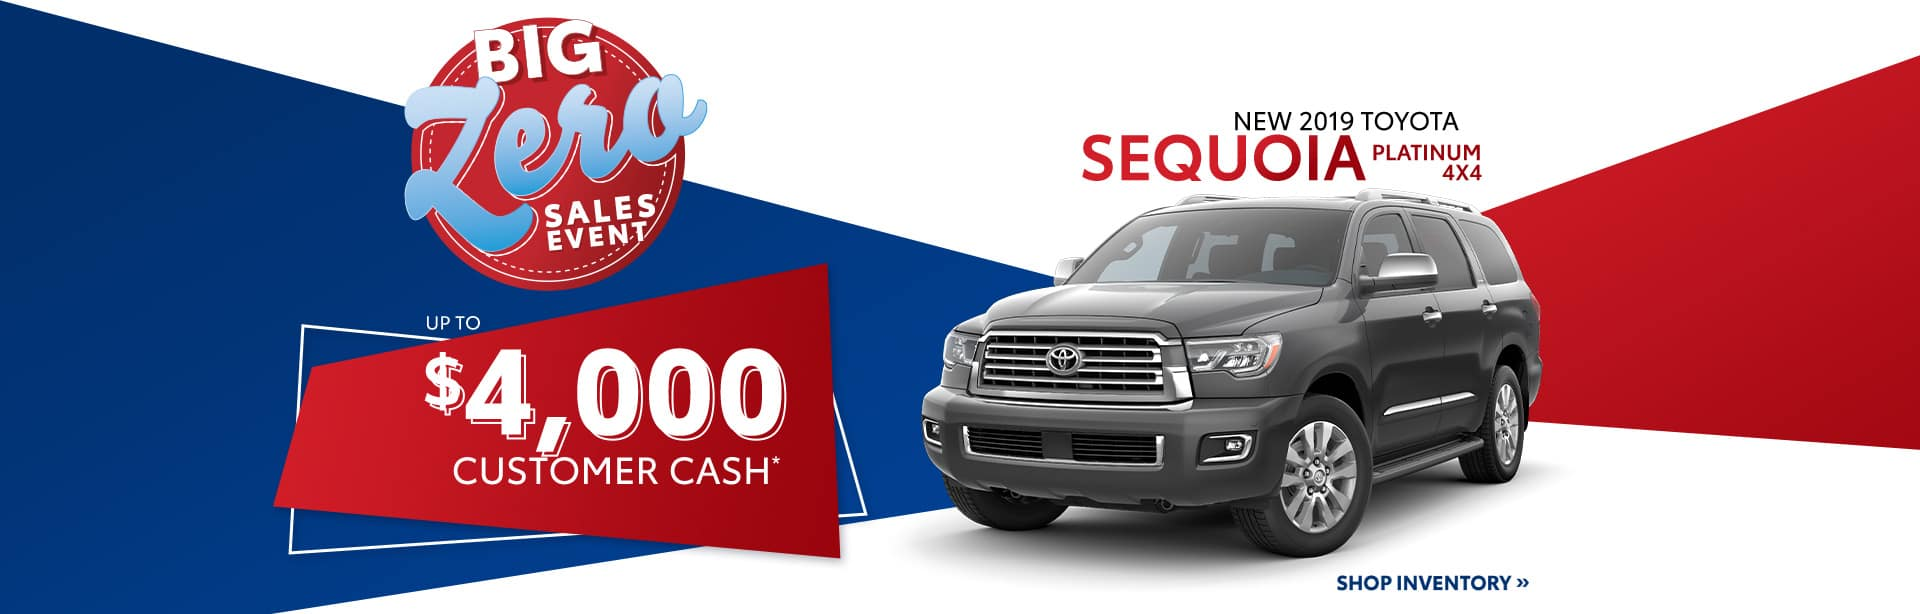 Best Deal on a Toyota Sequoia near Indianapolis, Indiana.